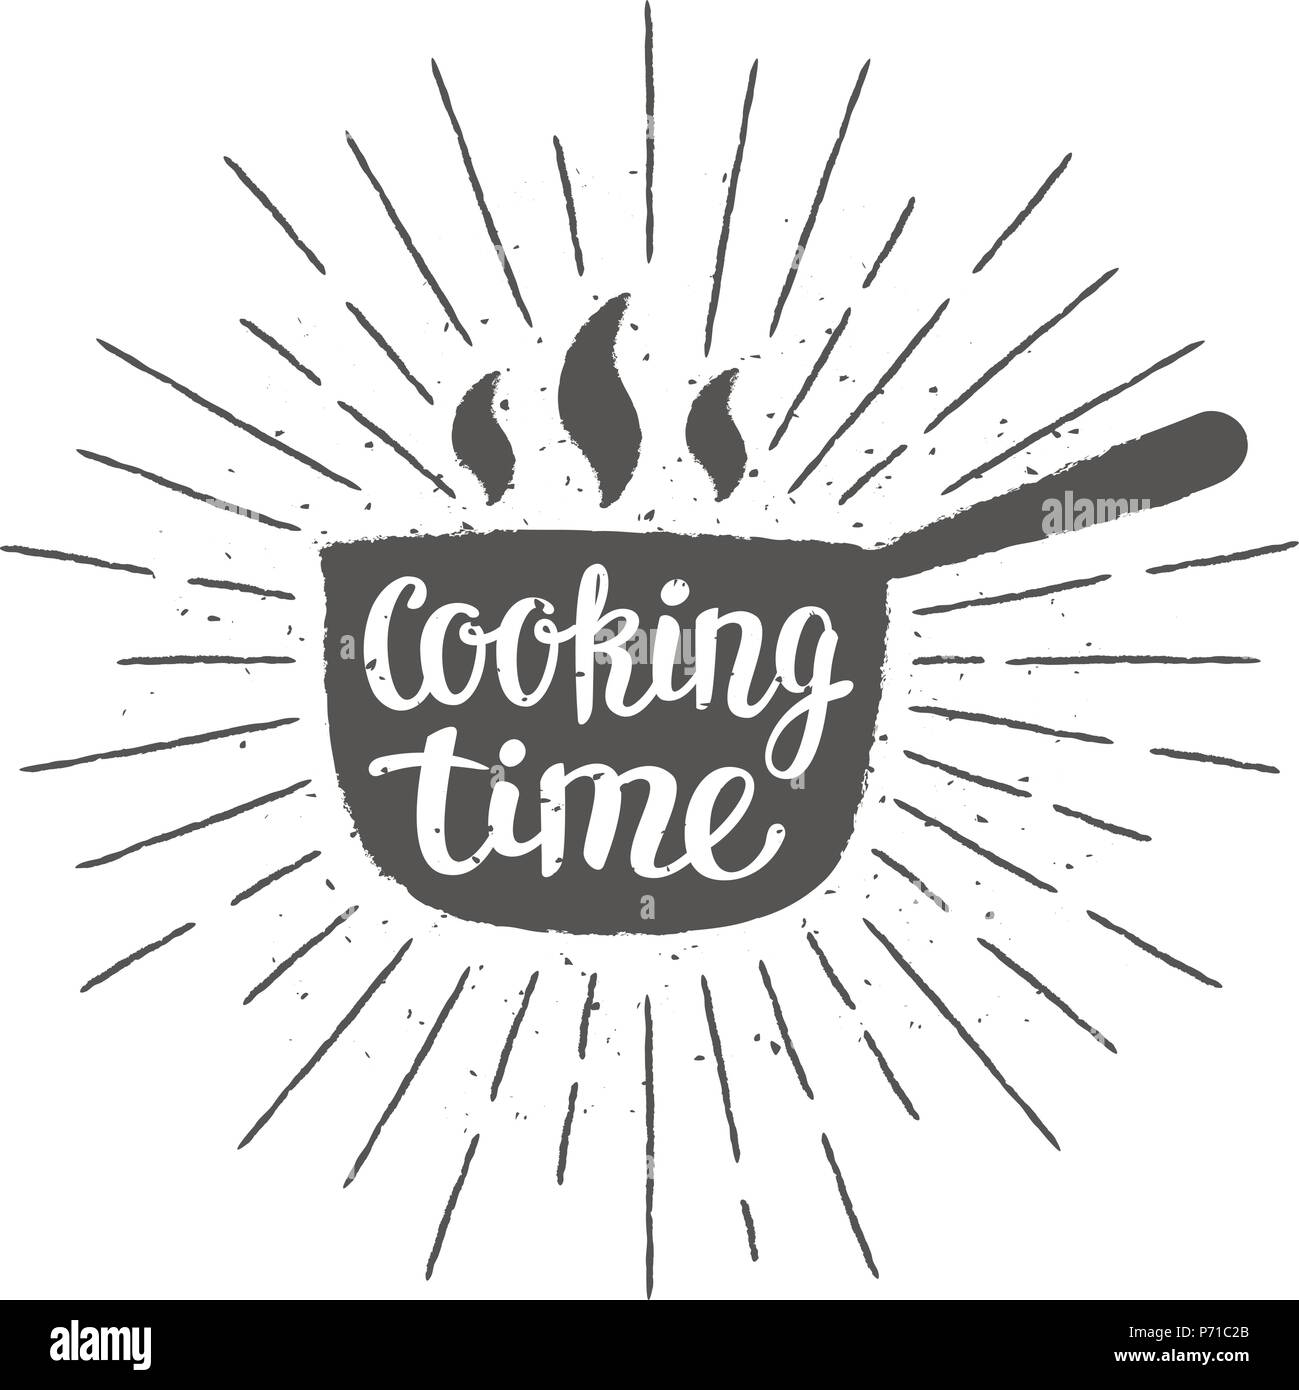 Pot silhoutte with lettering - Cooking time - and vintage sun rays. Good for cooking logotypes, bades or posters. - Stock Image